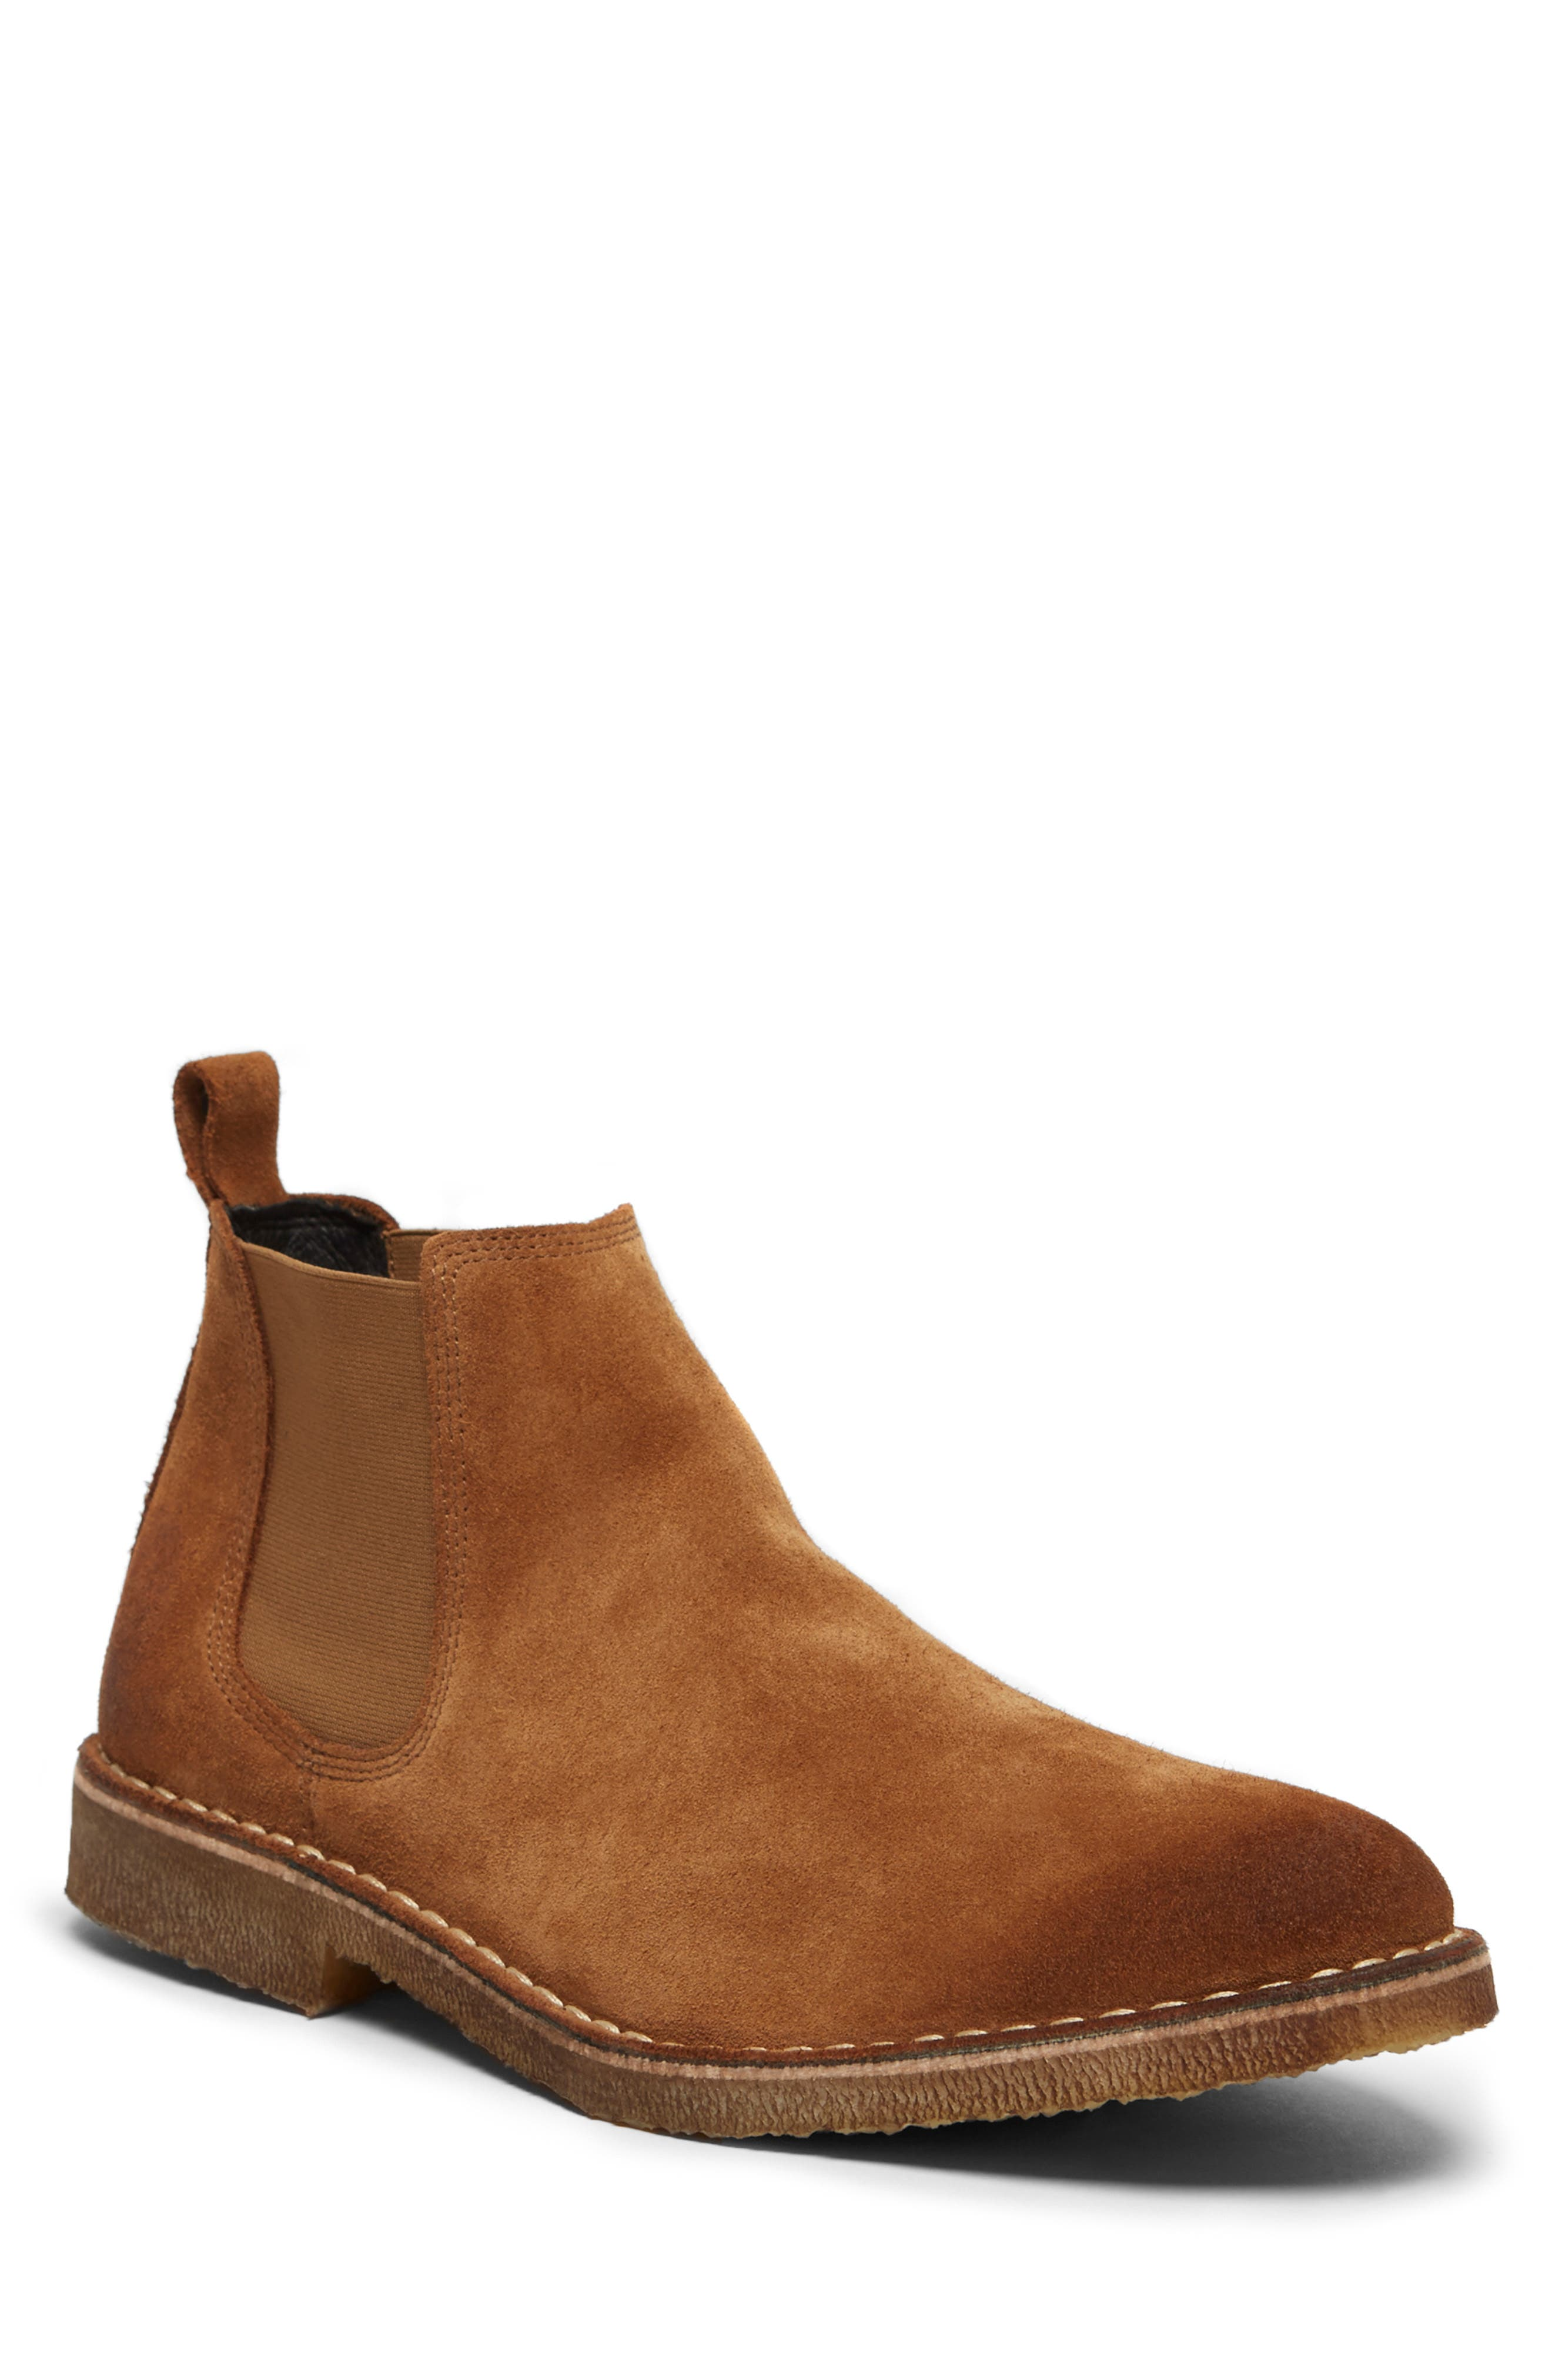 KENNETH COLE NEW YORK, Hewitt Chelsea Boot, Main thumbnail 1, color, RUST SUEDE